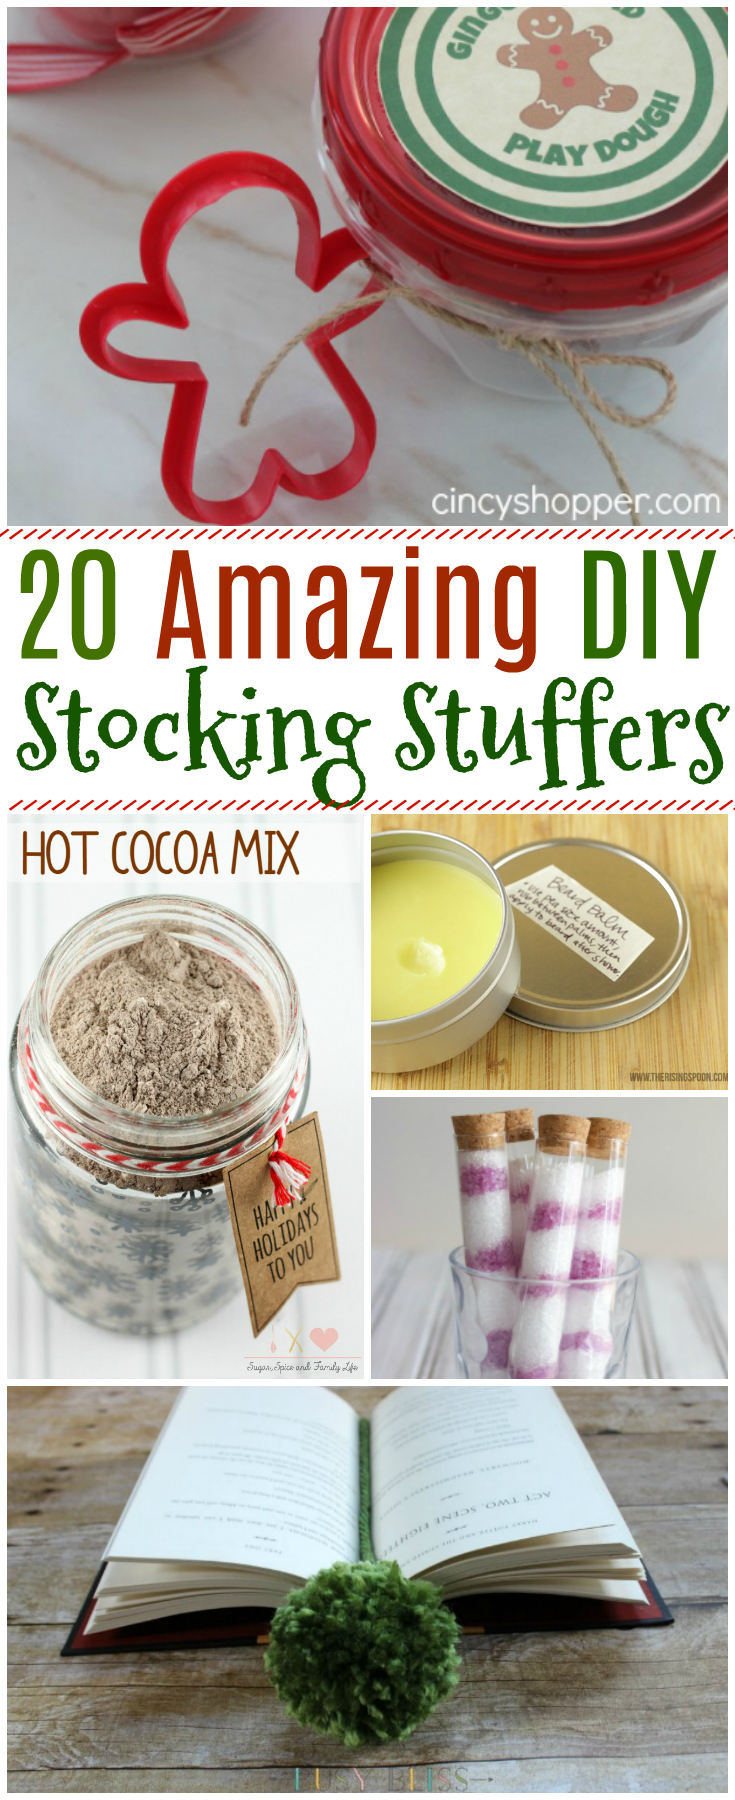 Find 20 Amazing DIY Stocking Stuffers that are incredibly easy to put together, cute to gift and perfect for the holidays! #Christmas #stockingstuffer #DIY #gift